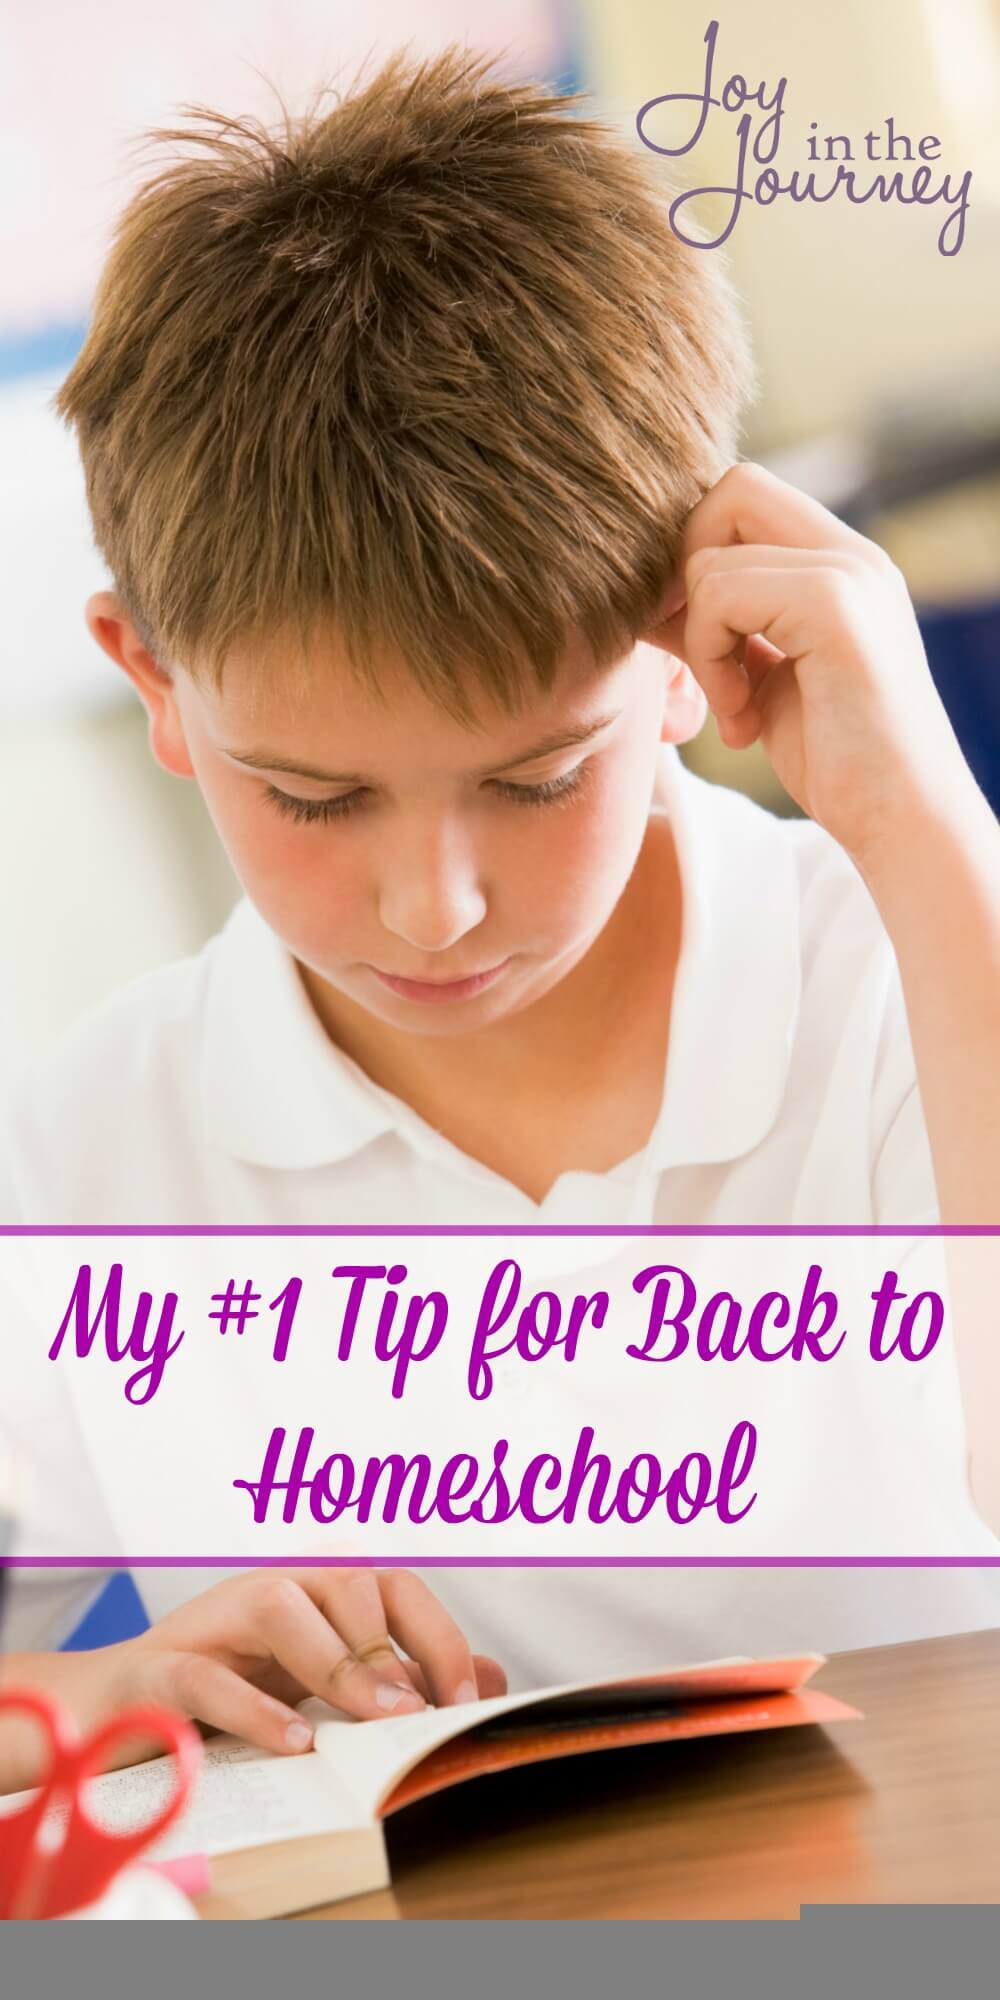 As we all prep for back to school, I am sharing some fun advice and information about our homeschool including my number one tip for back to school!